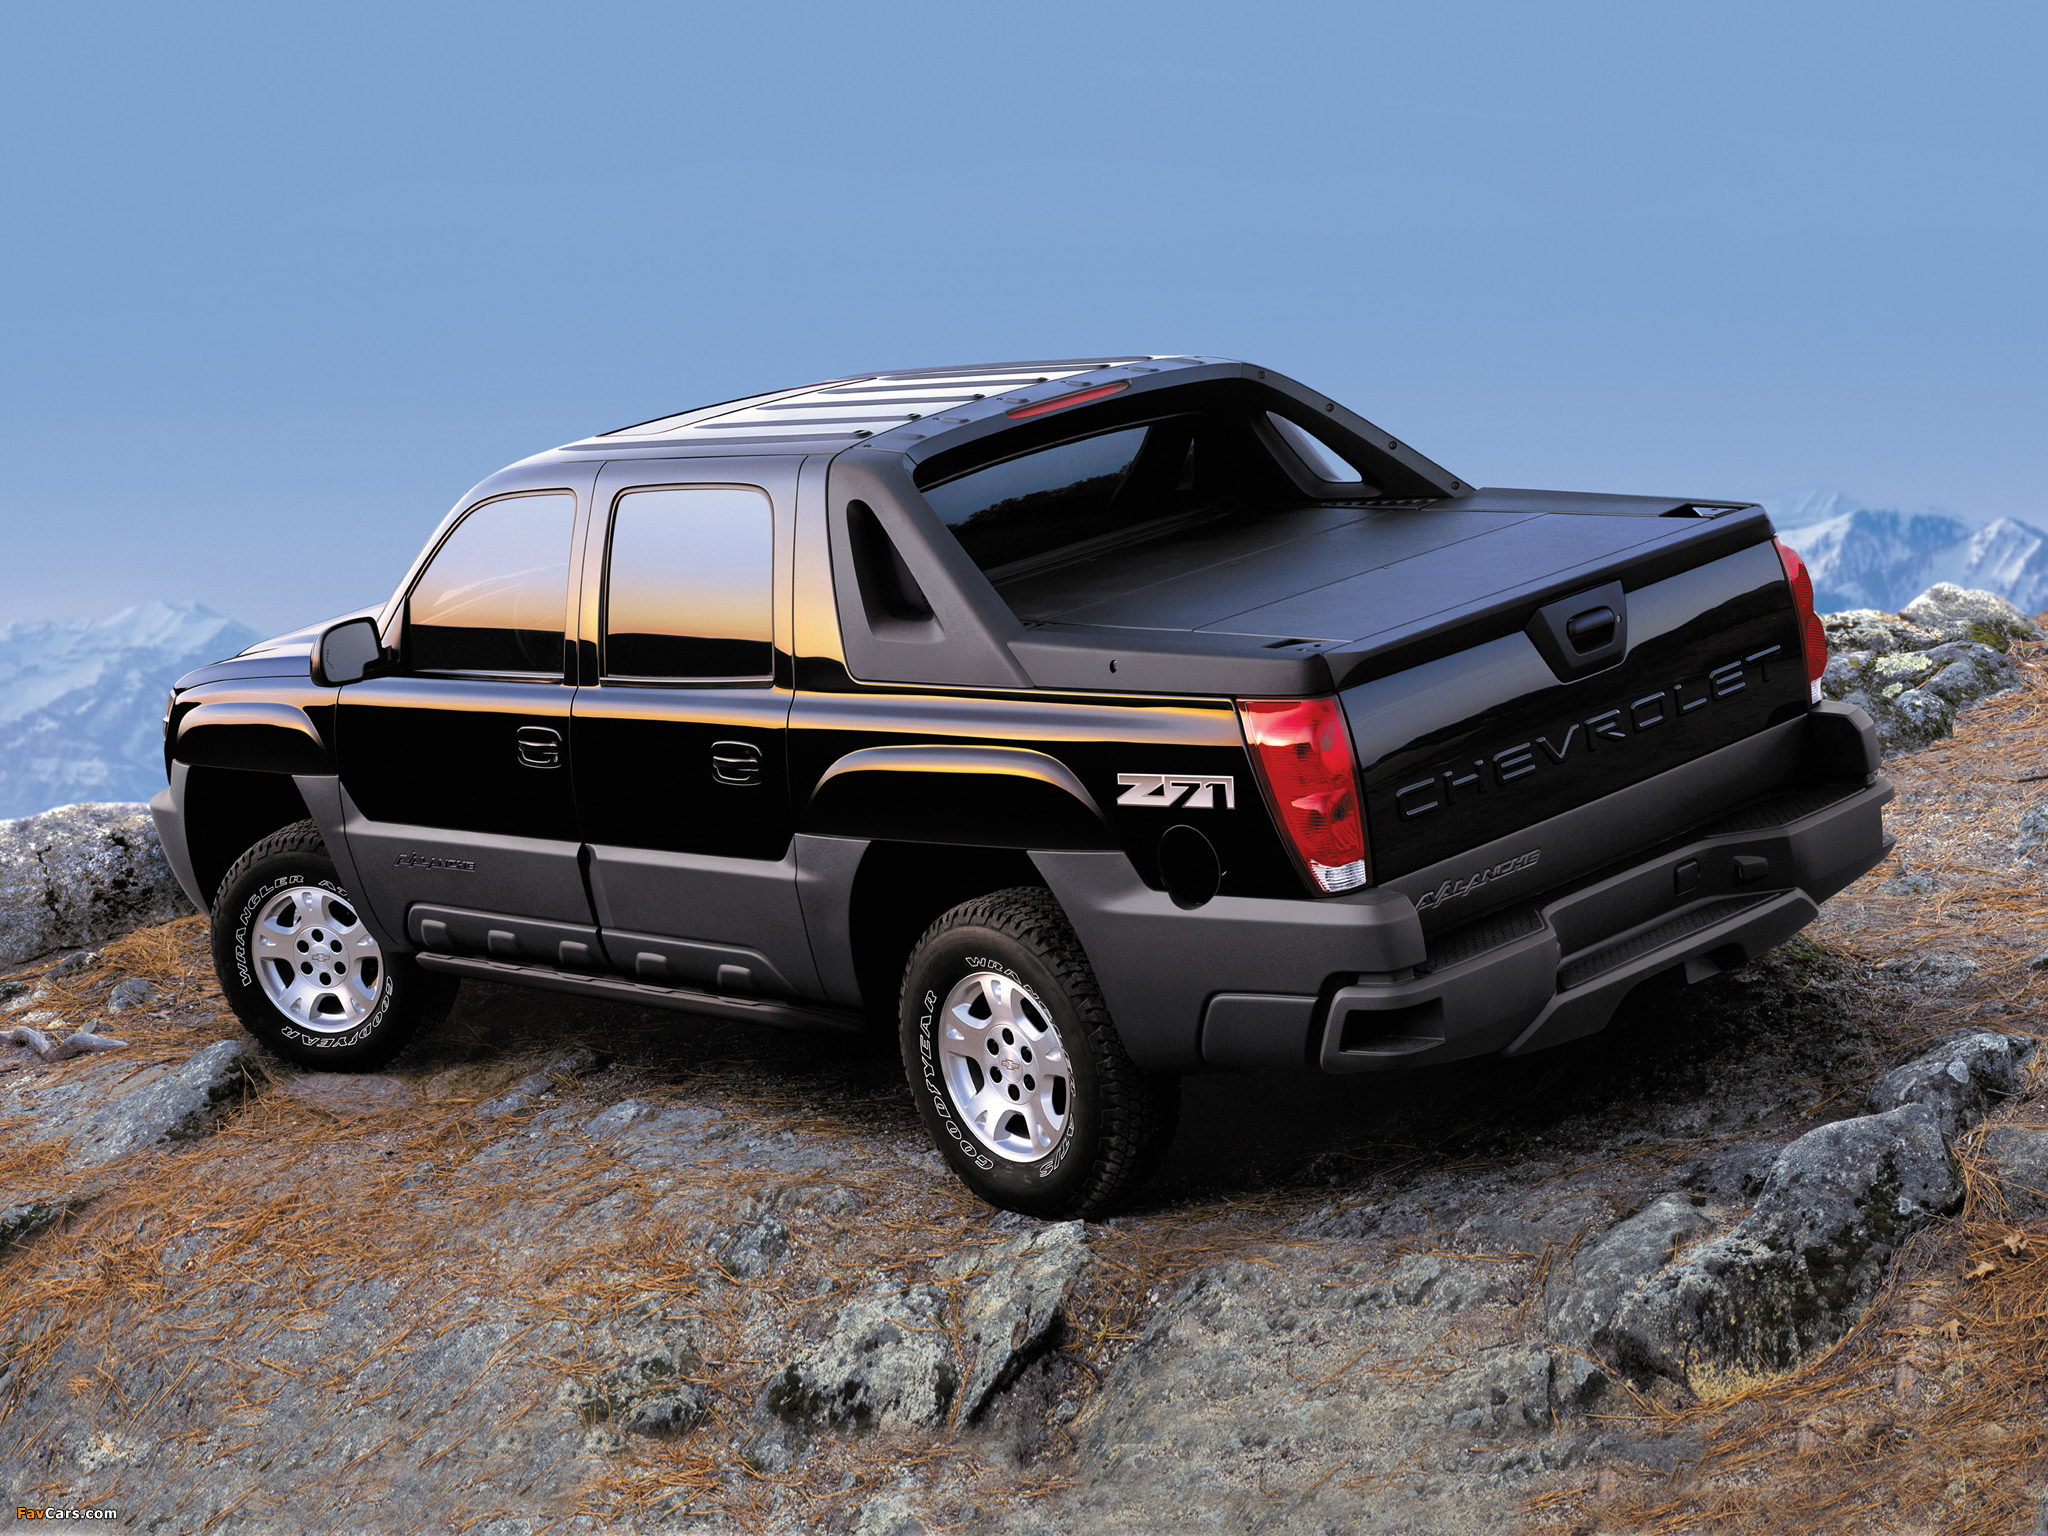 2002 chevrolet avalanche information and photos zombiedrive. Black Bedroom Furniture Sets. Home Design Ideas